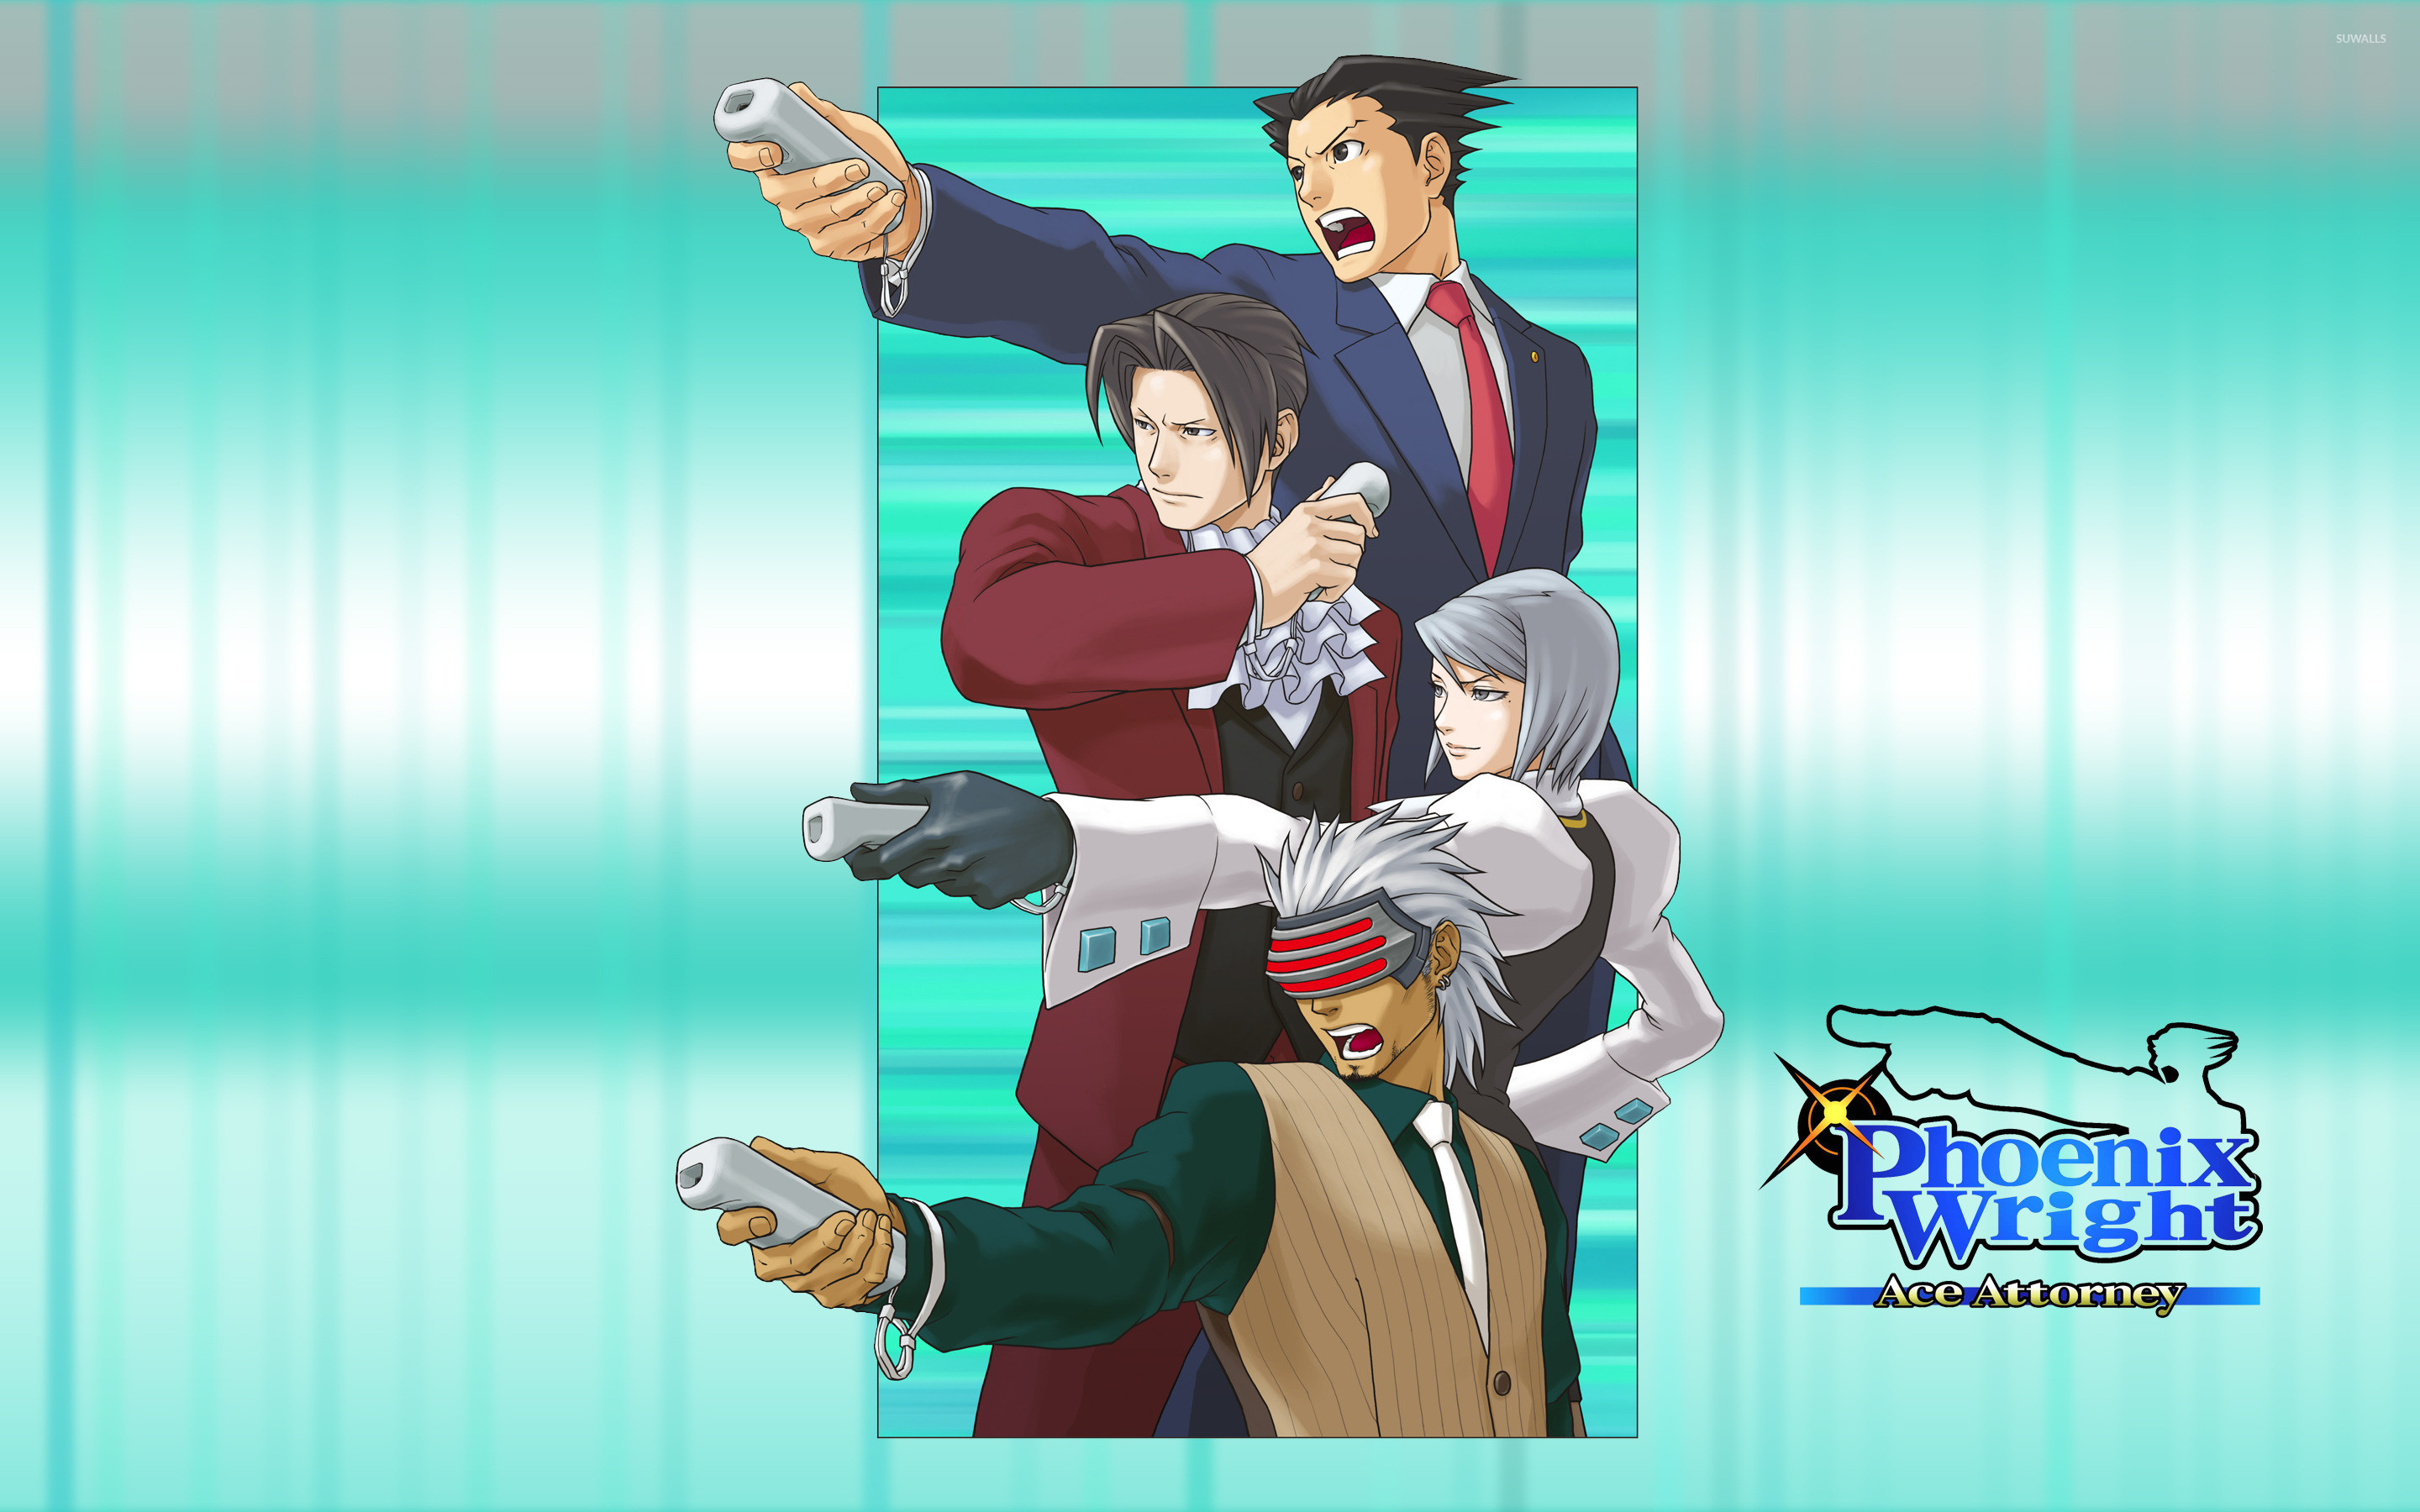 2880x1800 ... phoenix wright ace attorney 3 wallpaper game wallpapers 16642 ...